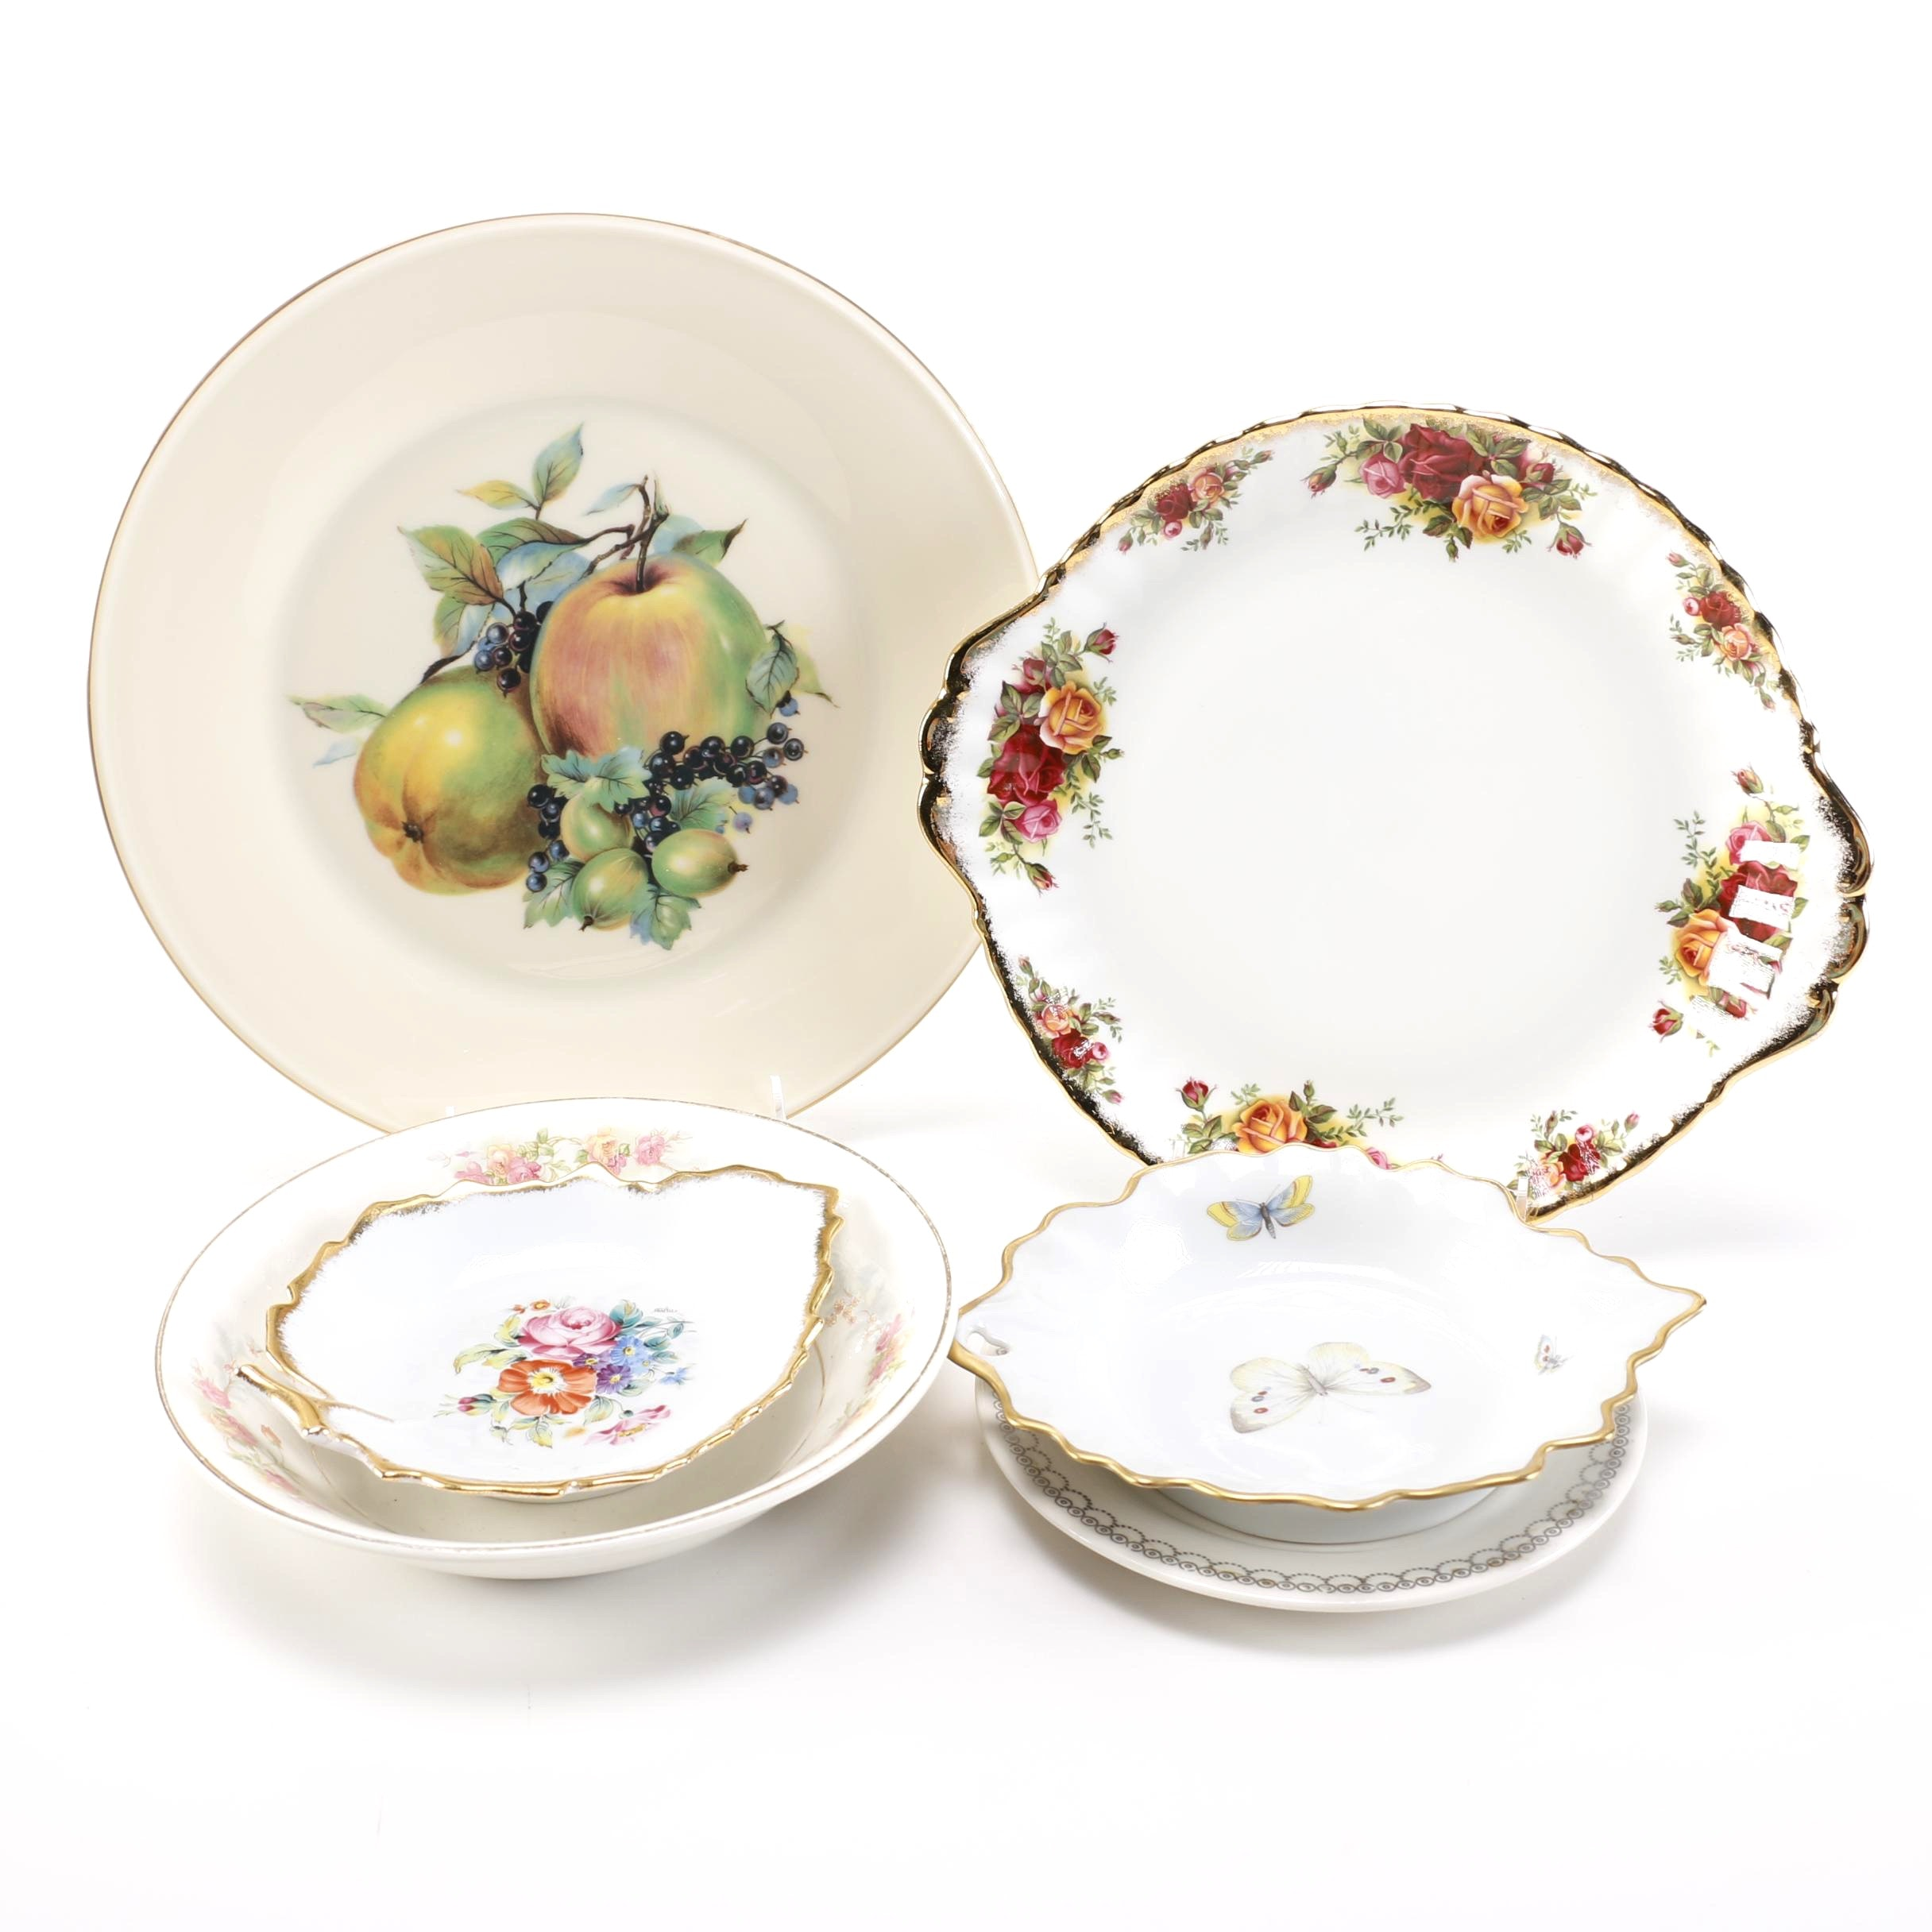 Contemporary China Plates featuring Lenox and Limoges